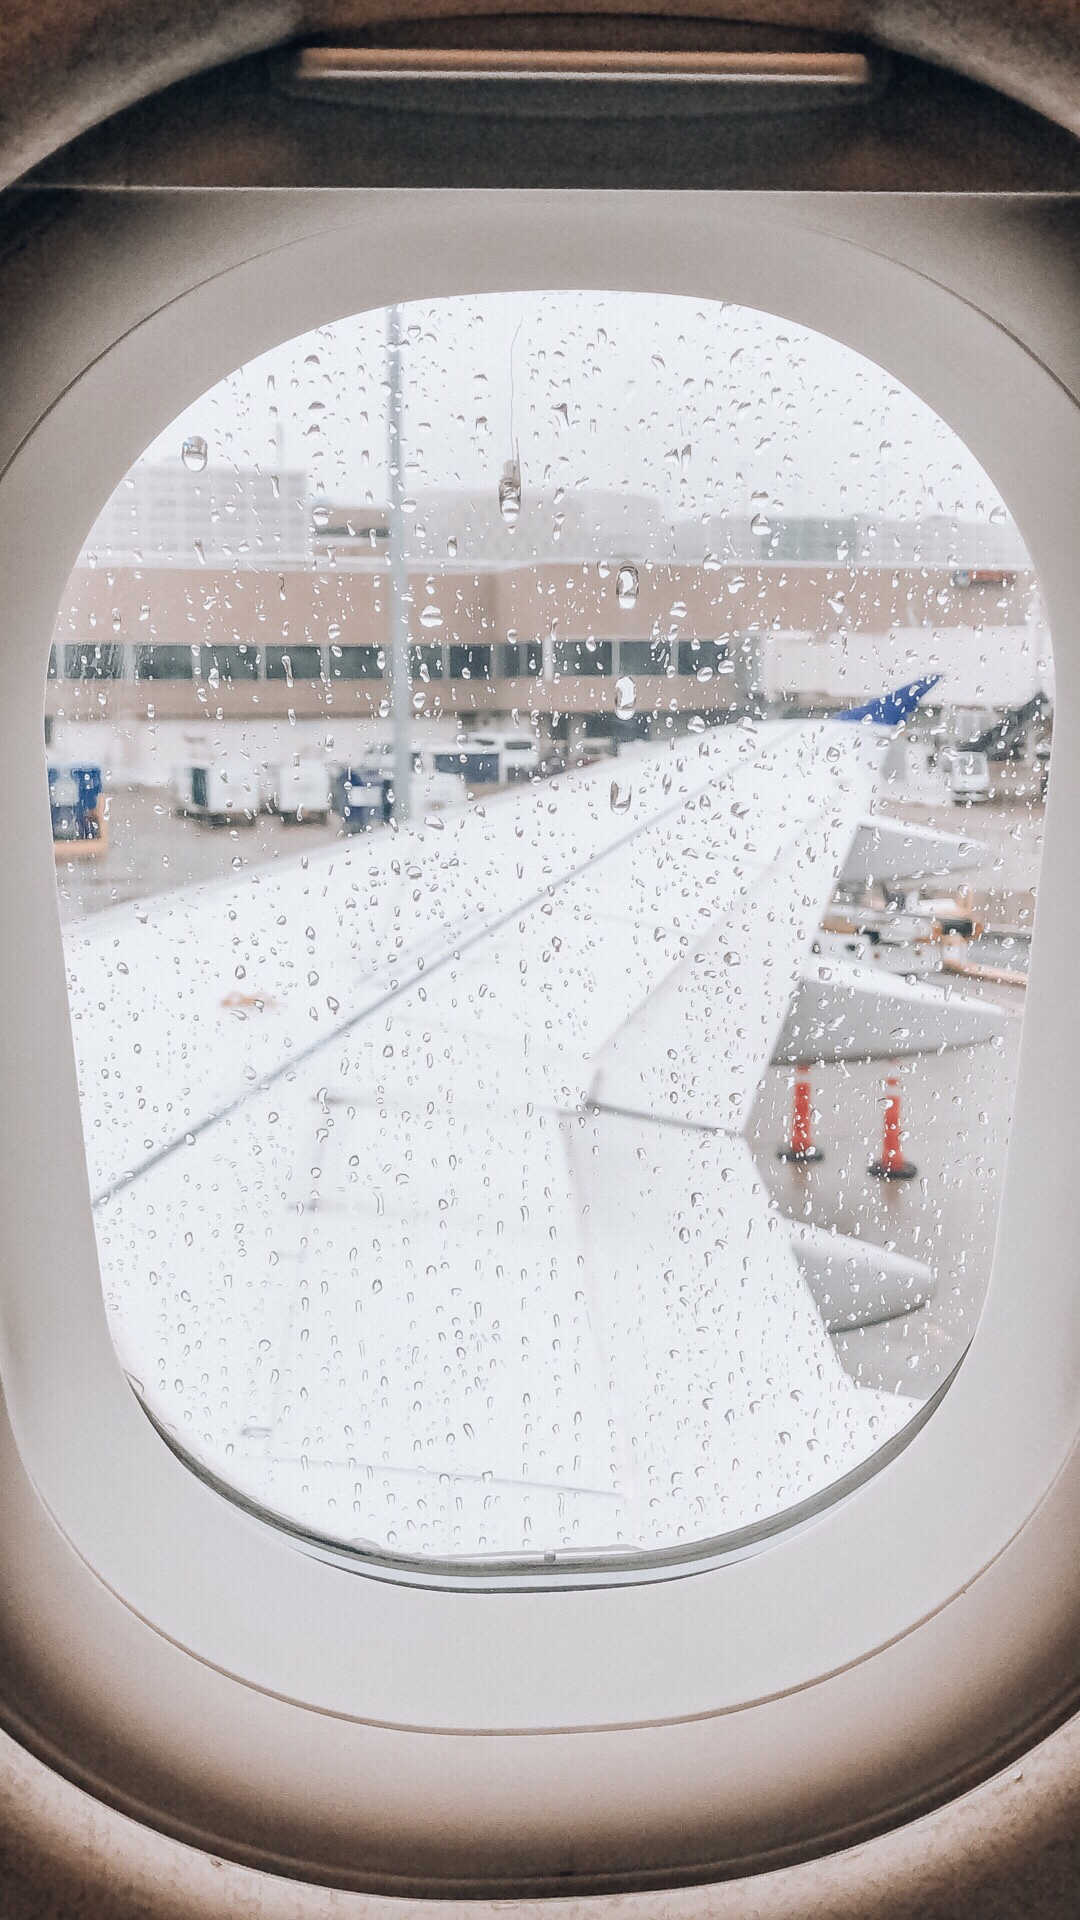 Gazing out a rain splattered airplane window and thinking of shuffling airports and an international flight scare!